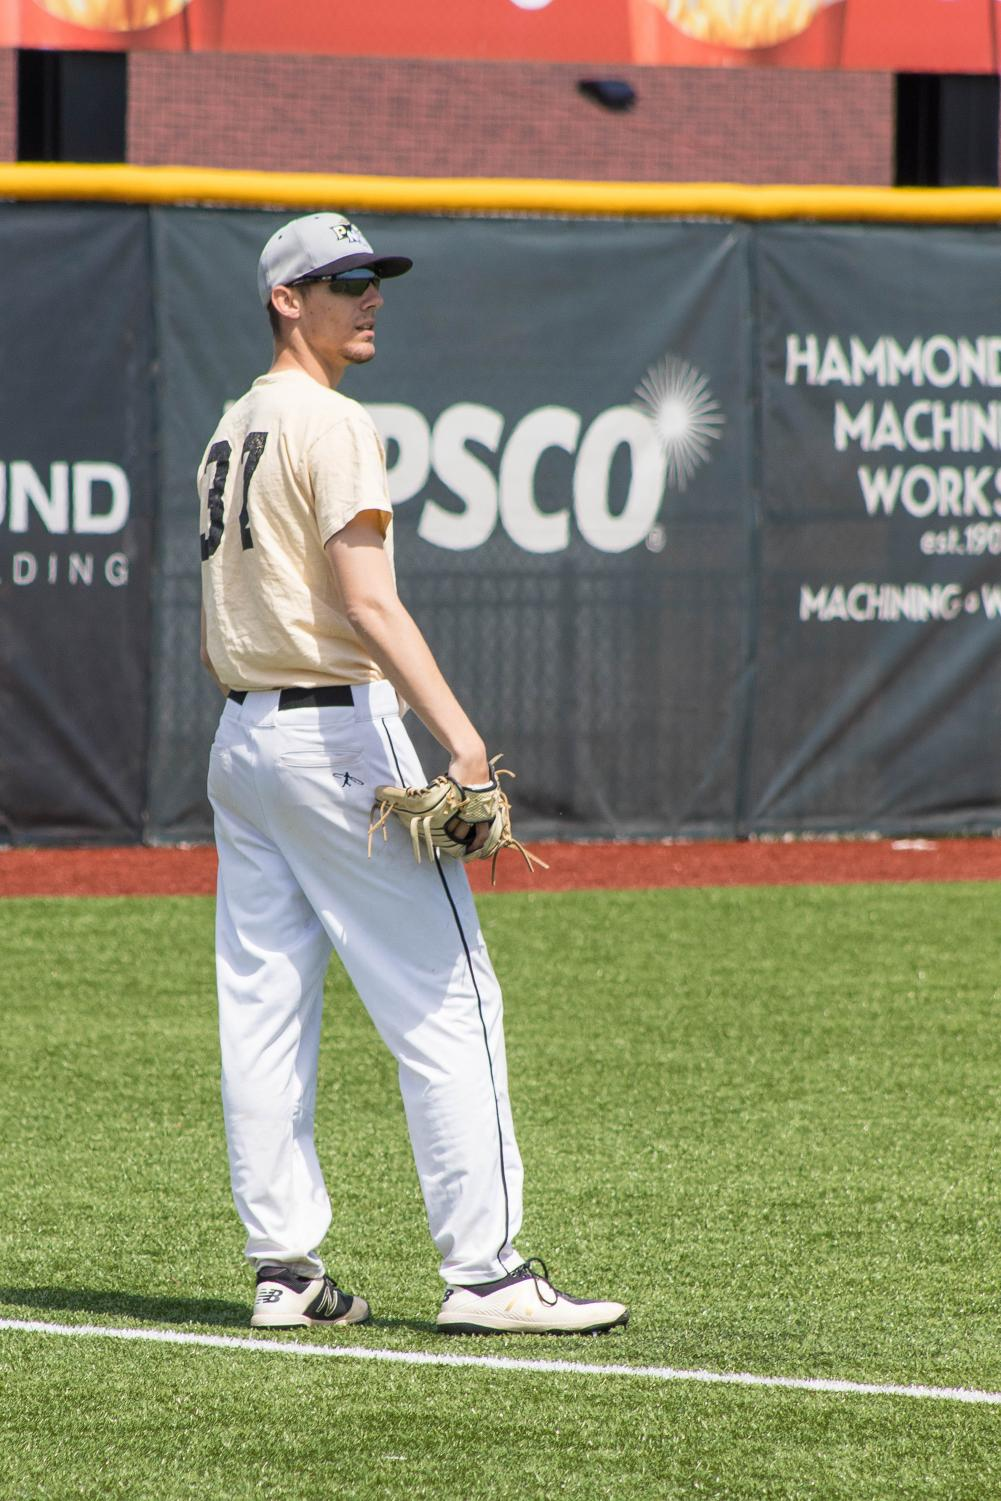 lo Kyle Flessner, pitcher, had a program record 16 strikeouts resulting in a one-hit shutout for PNW against Wayne State to win 5-0 on April 7.